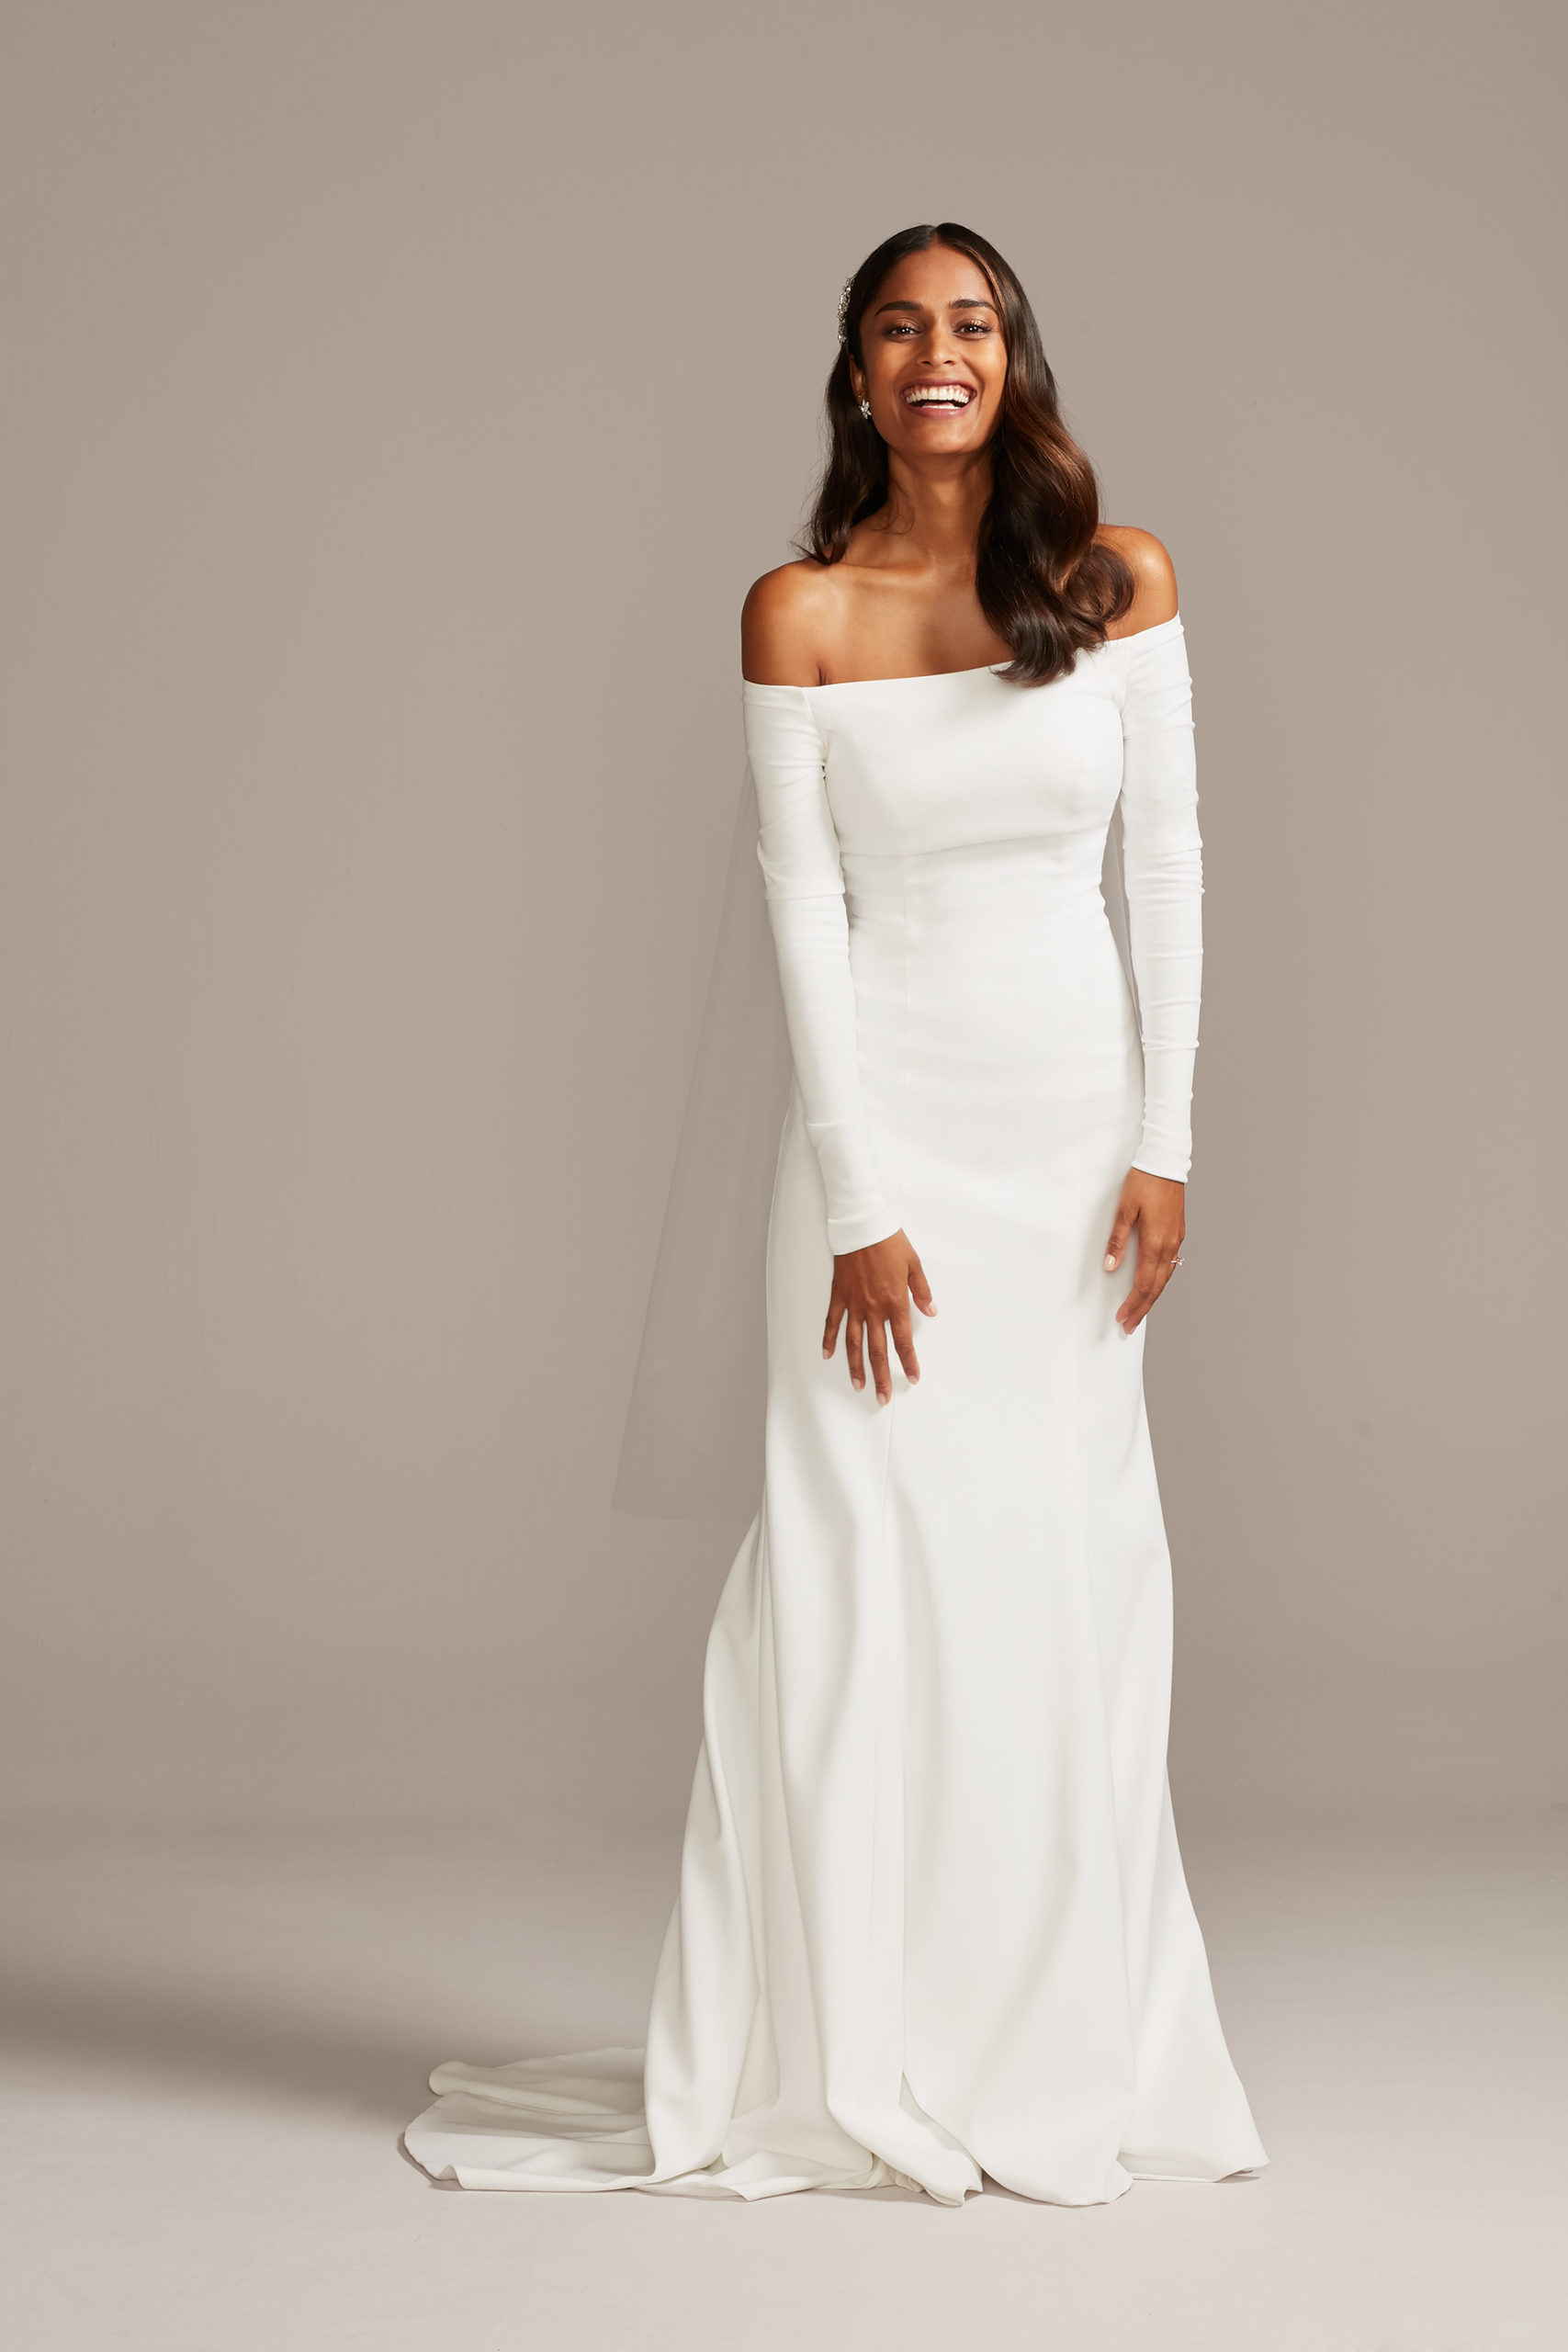 bride wearing wedding dress with off the shoulder sleeves